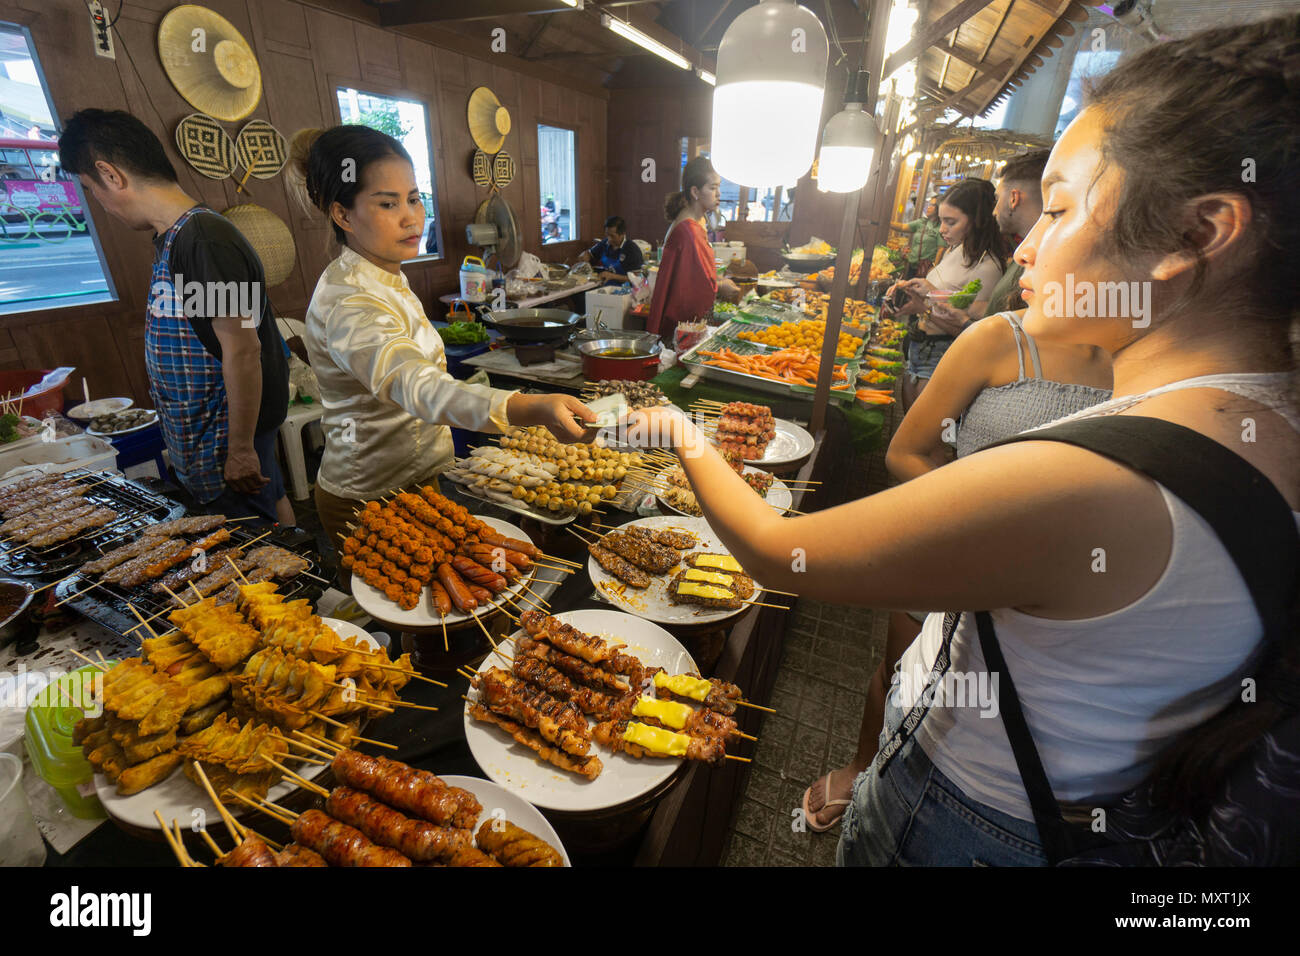 Street Food Market, MBK Shopping Centre, Bangkok, Thailand, Stockbild